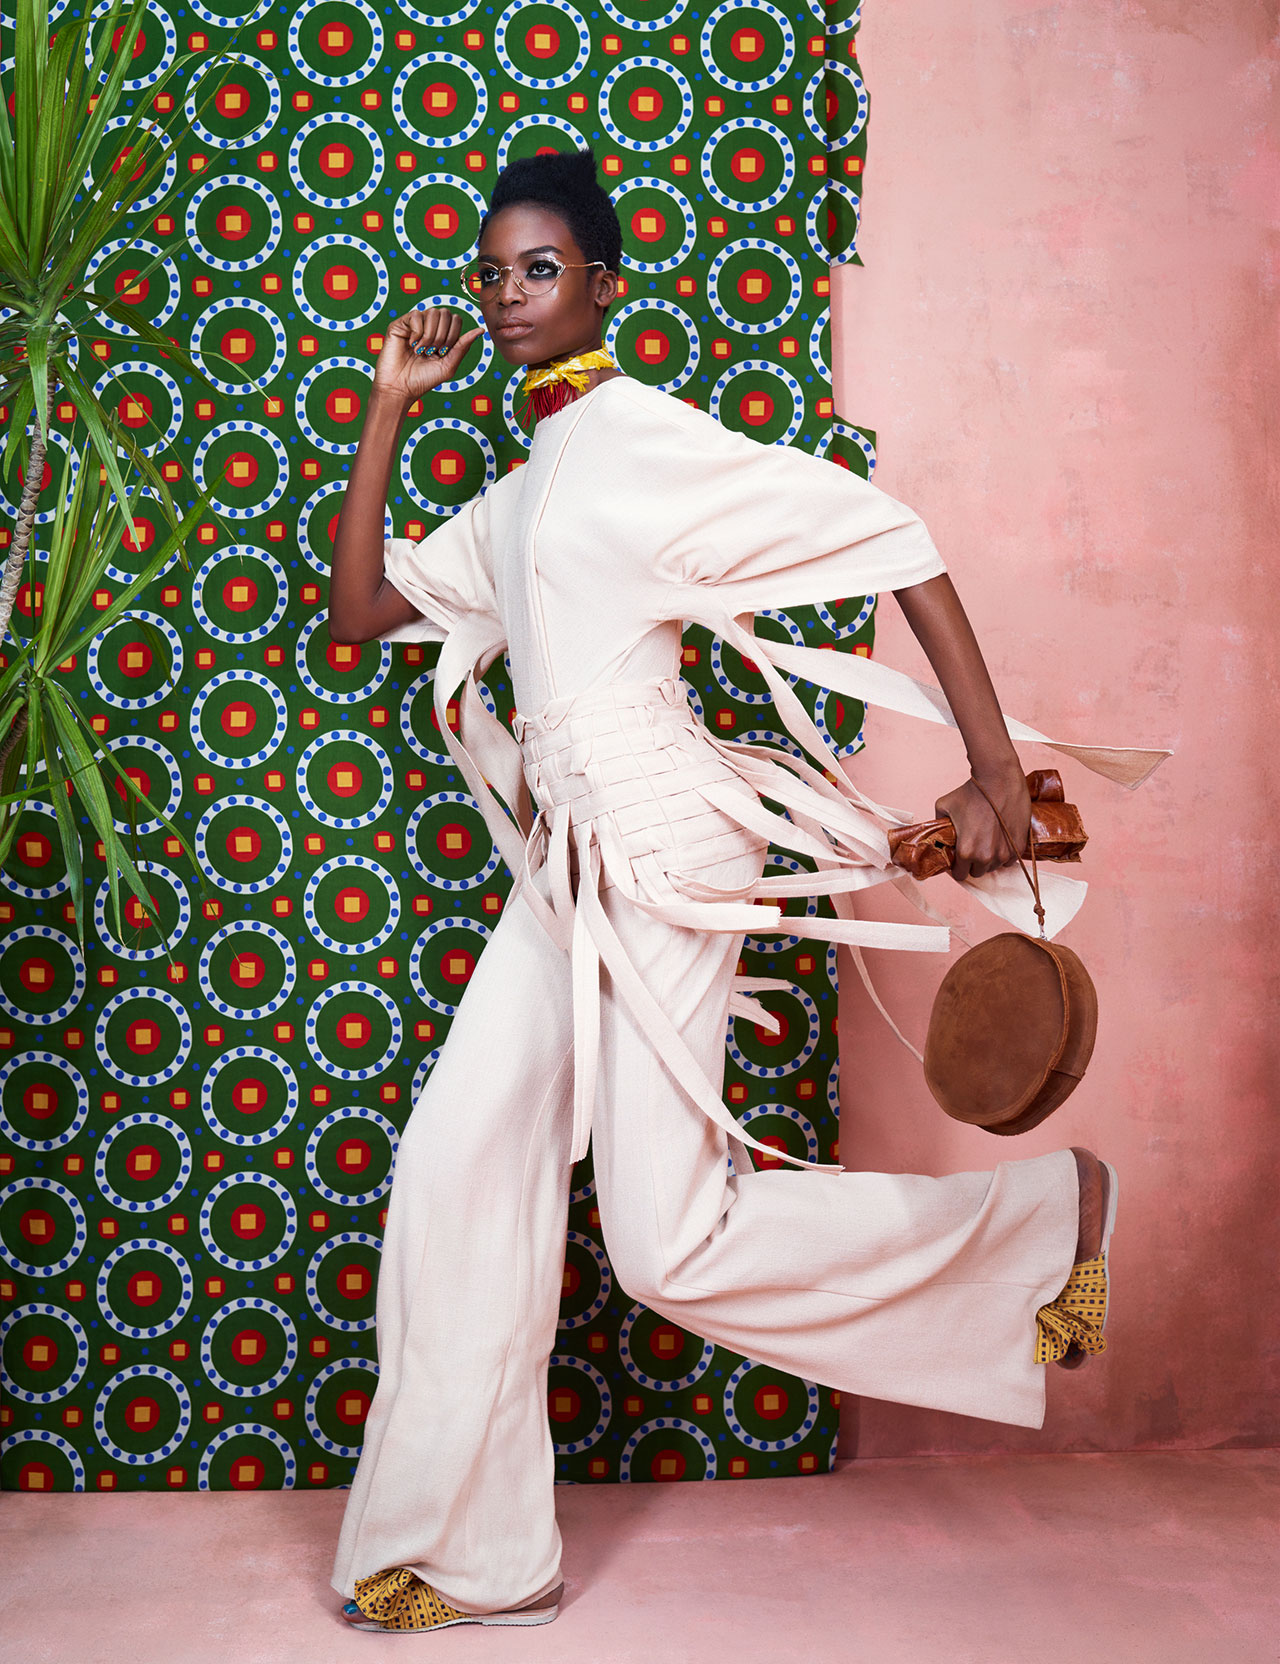 Maria-Borges-Ajak-Deng-Africa-rising-models.com-January-2016